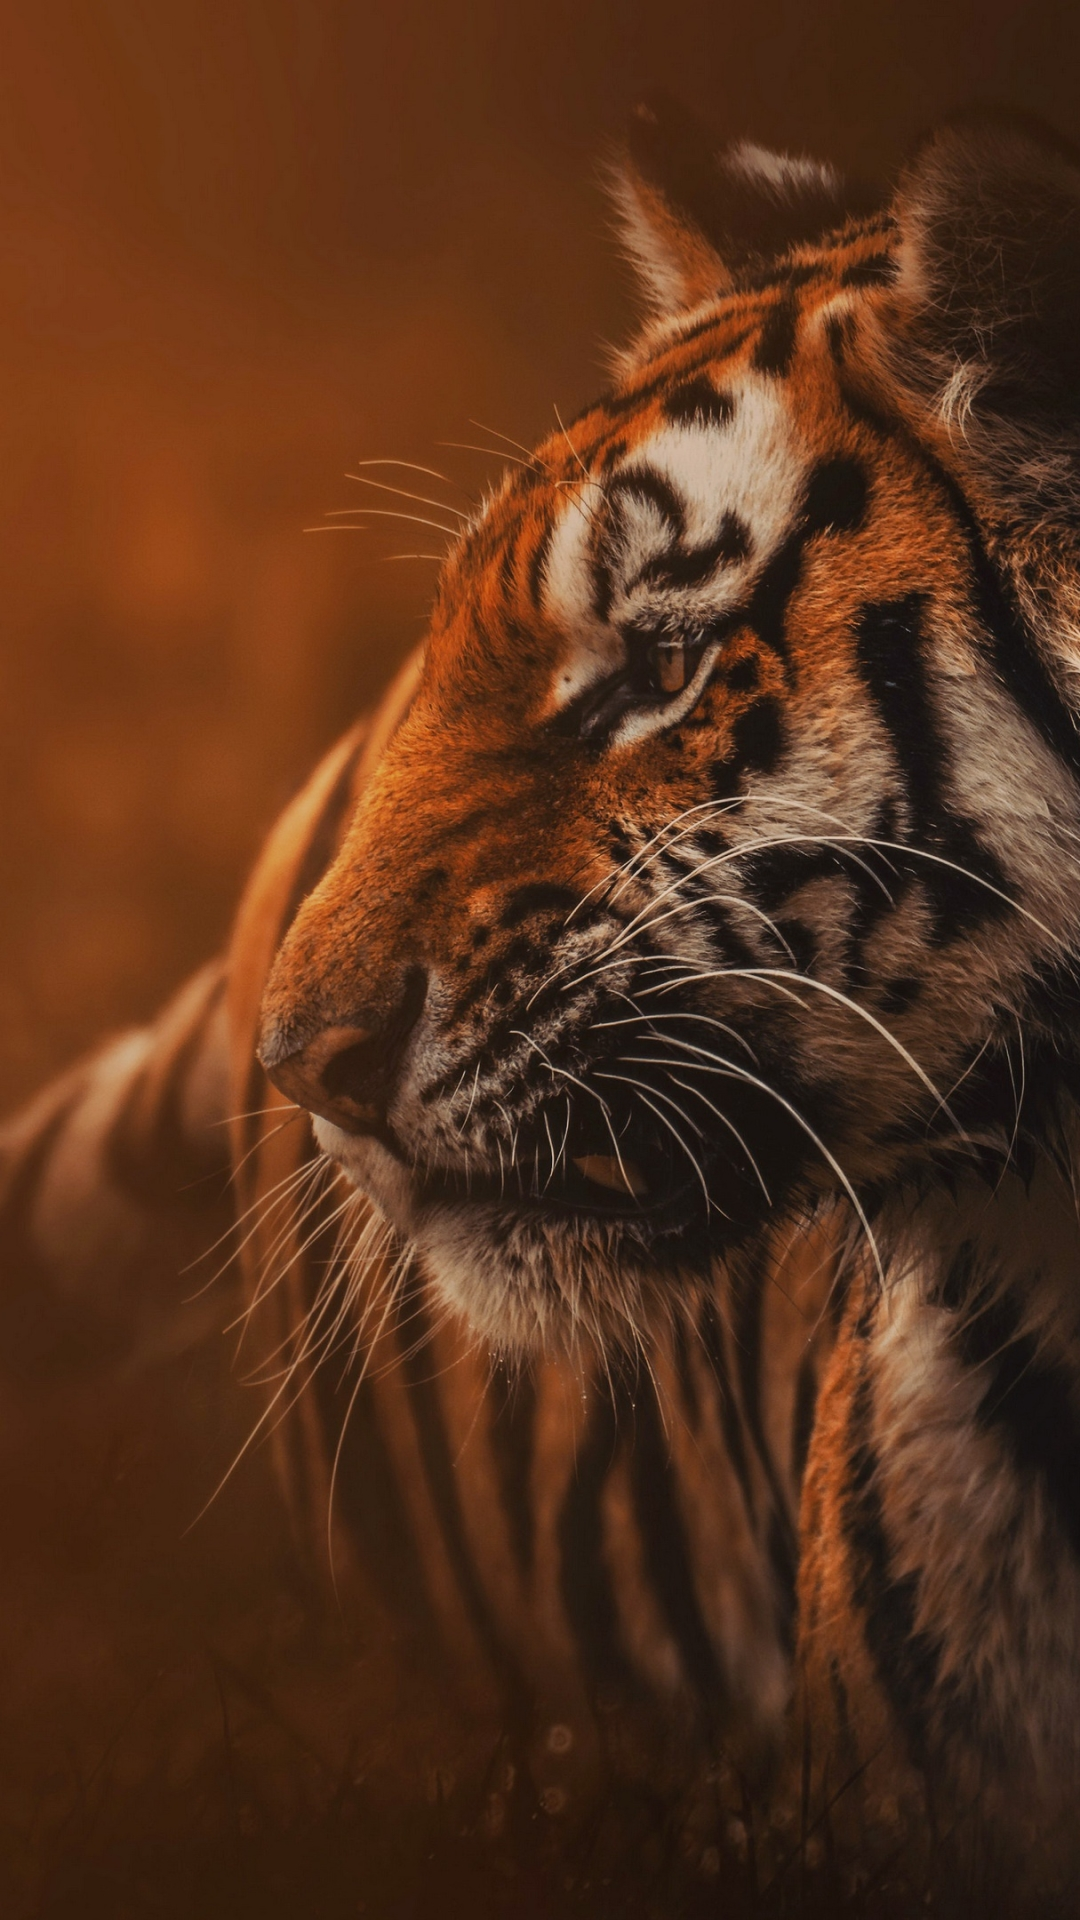 Free Download Savanna Tiger Hd Wallpapers Hd Wallpapers For Your Desktop Mobile & Tablet Wildlife